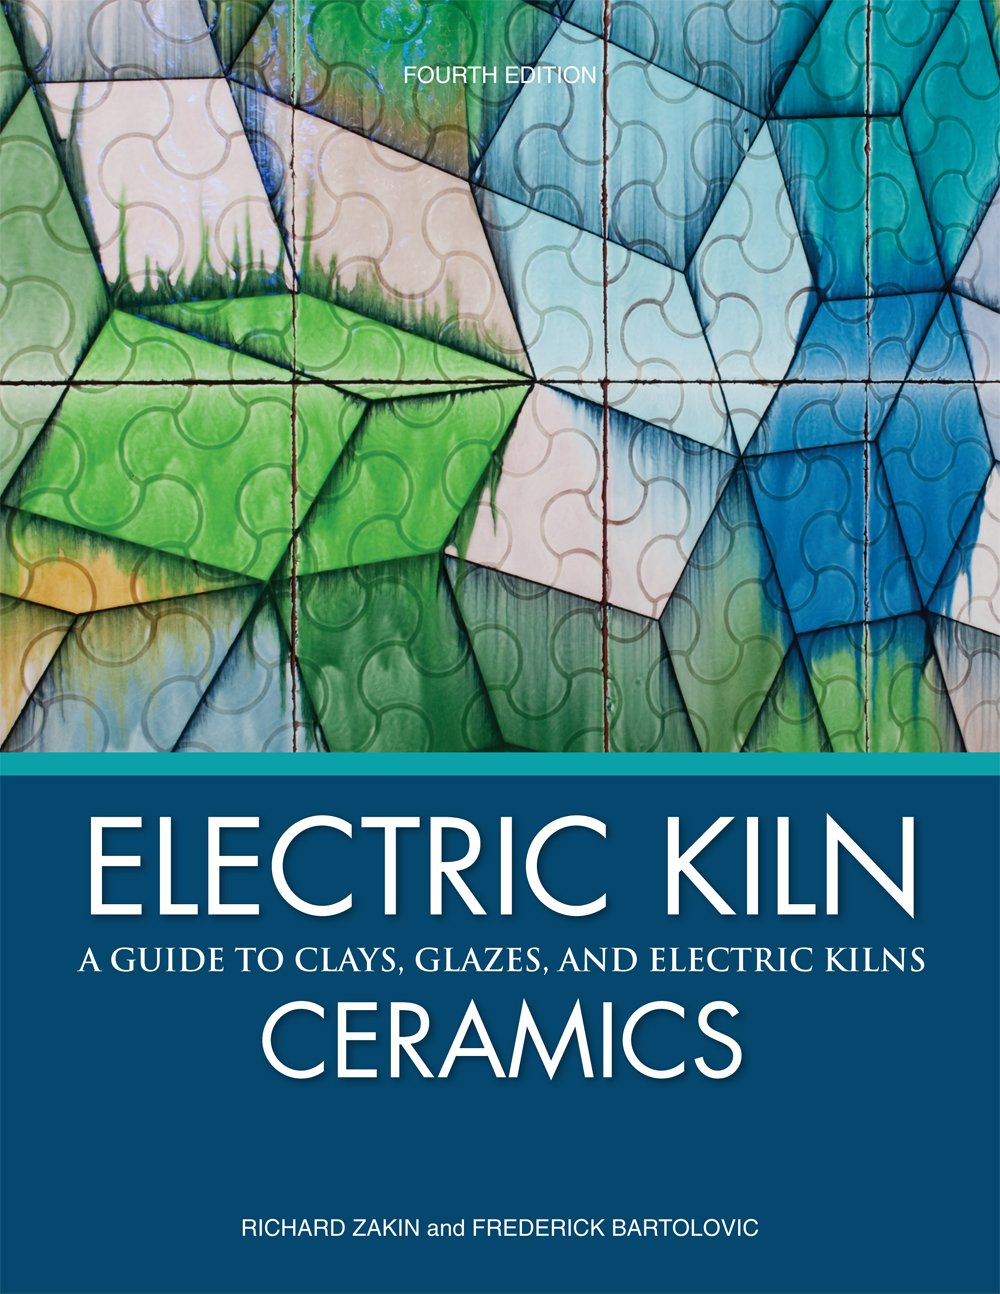 Electric Kiln Ceramics. Zakin, Richard. The American Ceramic Society. 2015